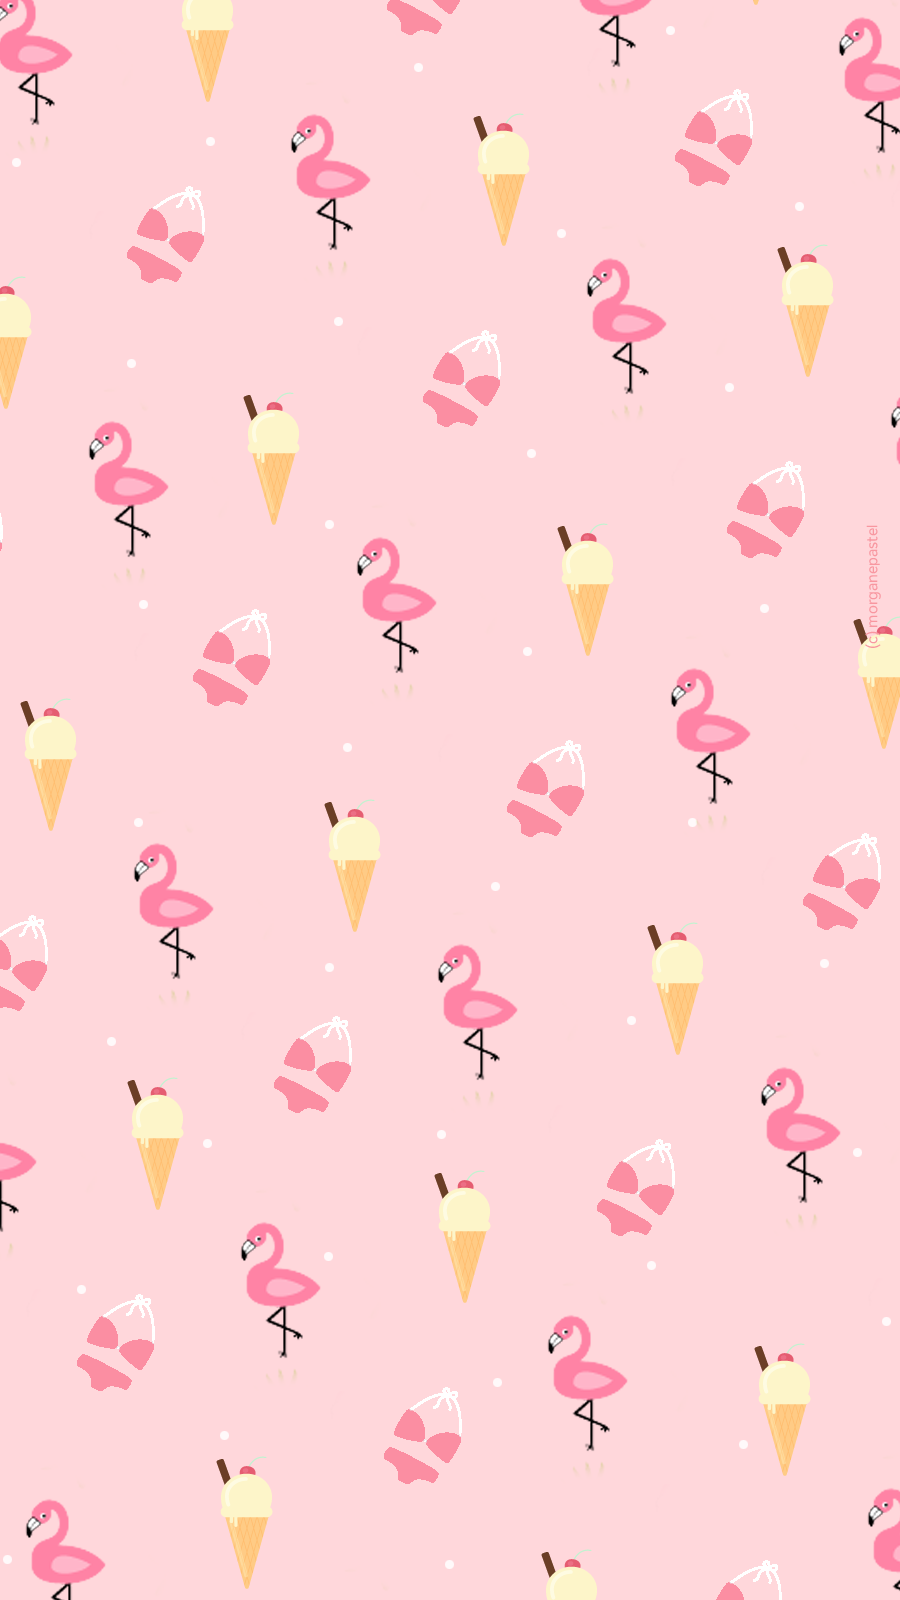 Wallpaper-Glace-Flamingo_iphone6.png 900×1600 пикс